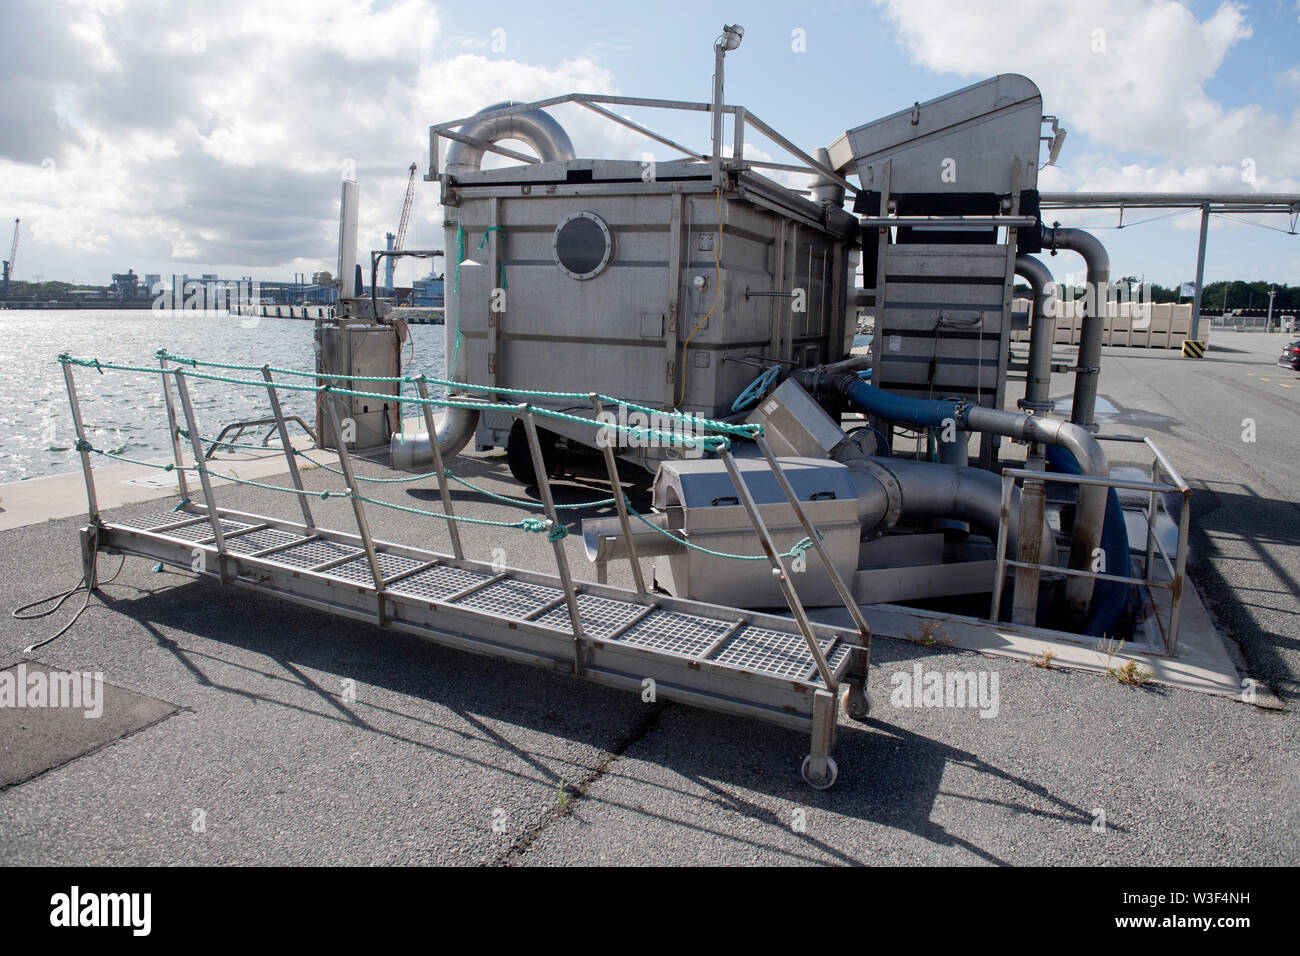 Sassnitz, Germany. 08th July, 2019. A fish pump is located at the pier of the EuroBaltic fish farm of the Dutch Parlevliet & Van der Plas Group (P&P) in Sassnitz-Mukran. The EuroBaltic fishing plant on the island of Rügen is one of the largest fish processors in Europe, processing up to 50,000 tonnes of herring from the North and Baltic Seas. Credit: Stefan Sauer/dpa-Zentralbild/ZB/dpa/Alamy Live News - Stock Image